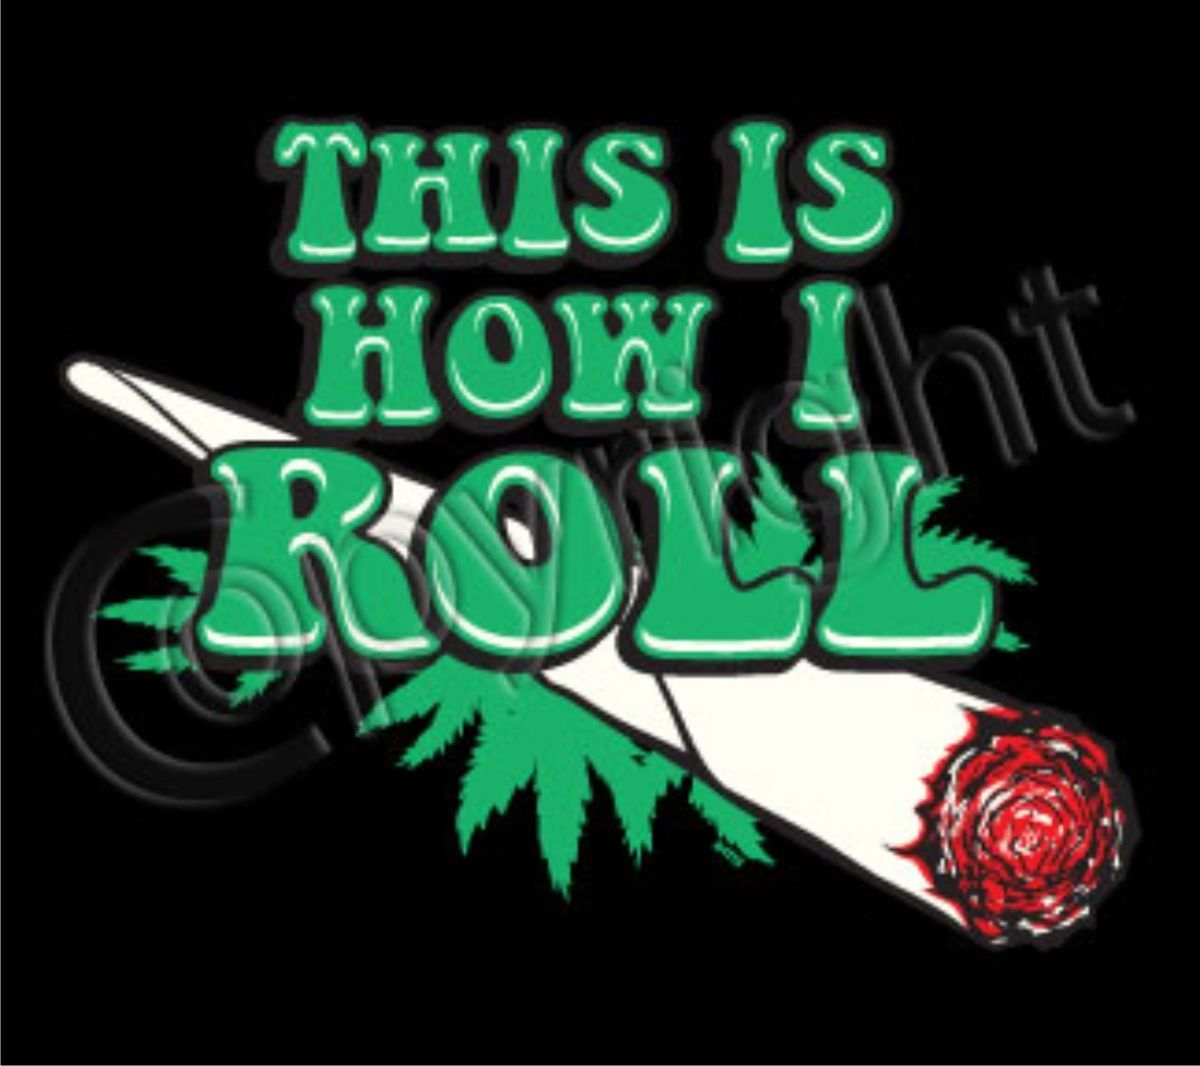 Cool marijuana smoke pictures cool weed images funny quotes